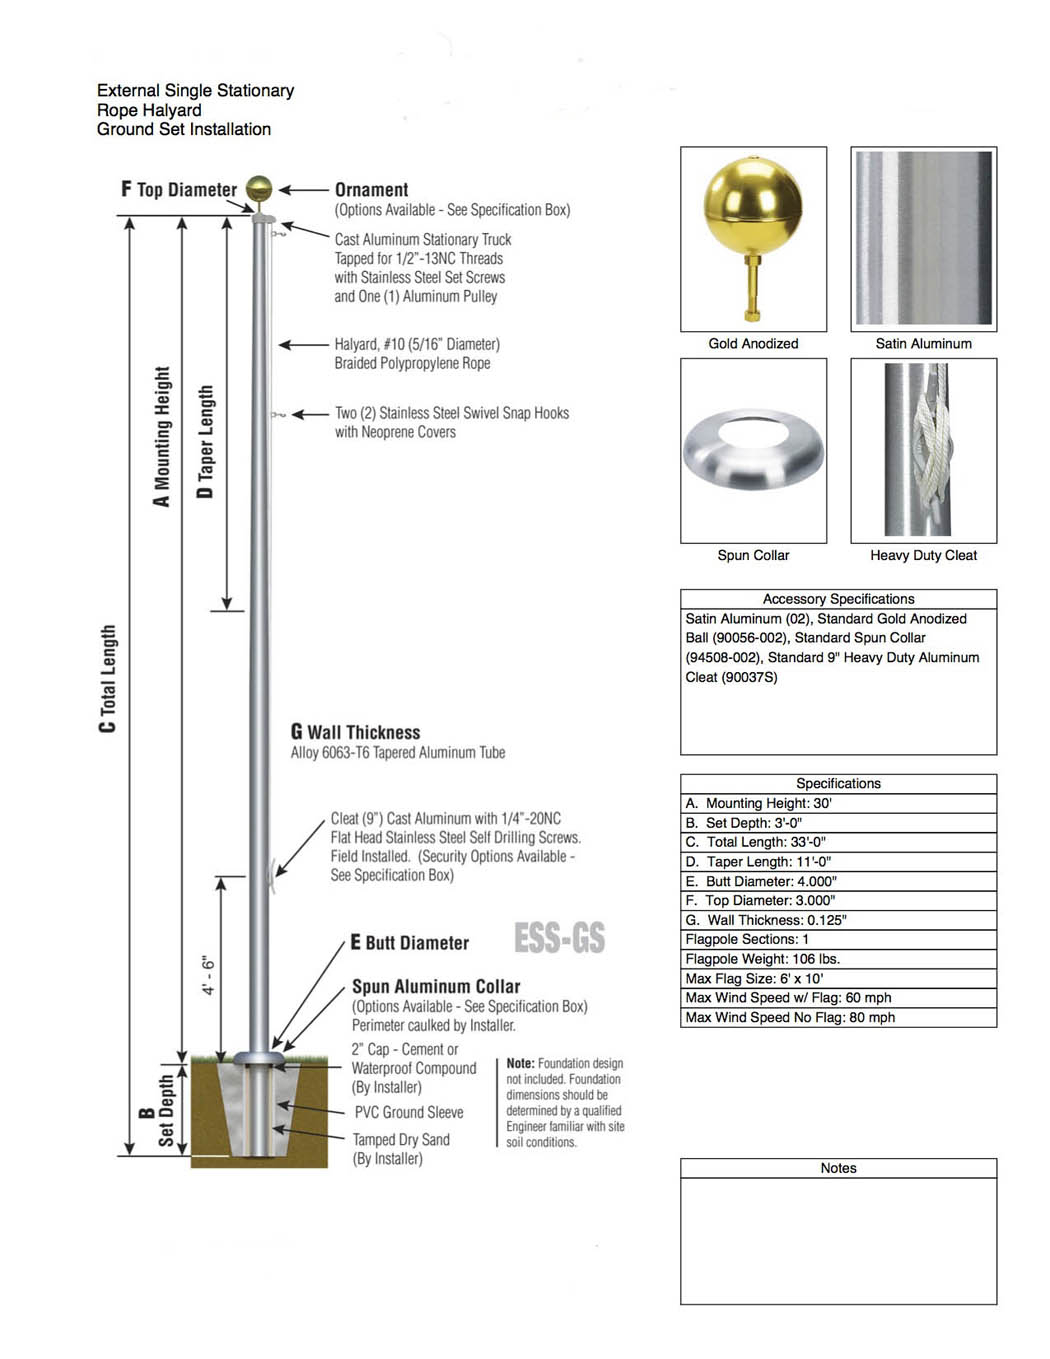 Satin Aluminum 30 ft Flagpole Specifications